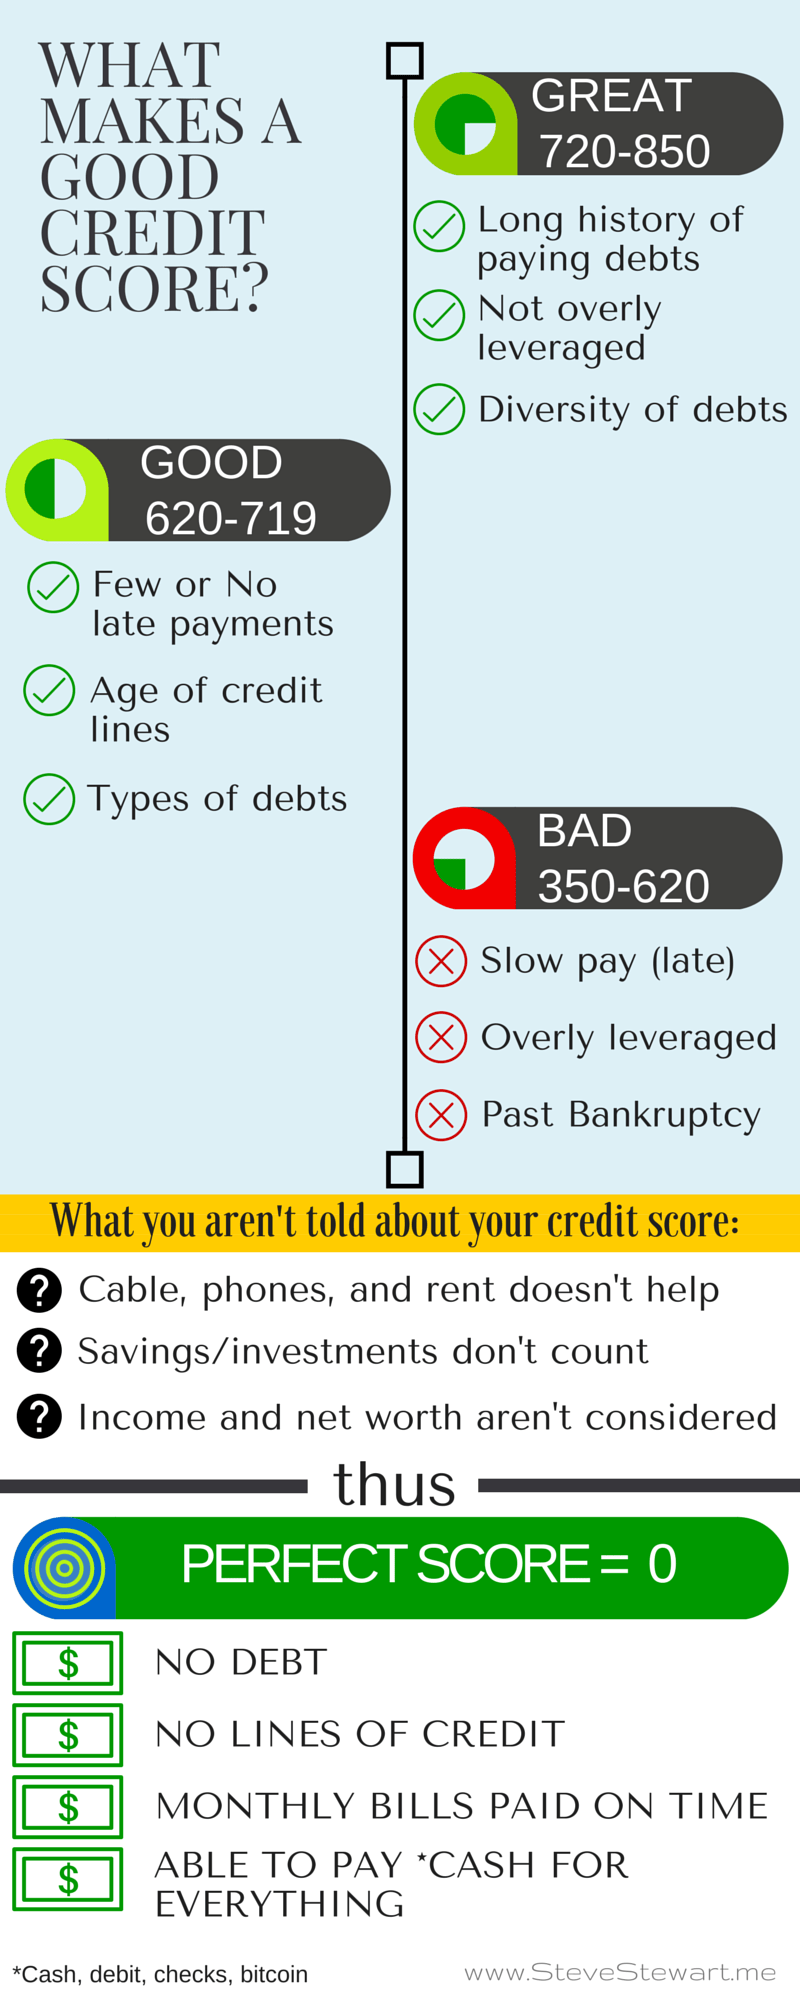 WHAT MAKES CREDIT SCORE